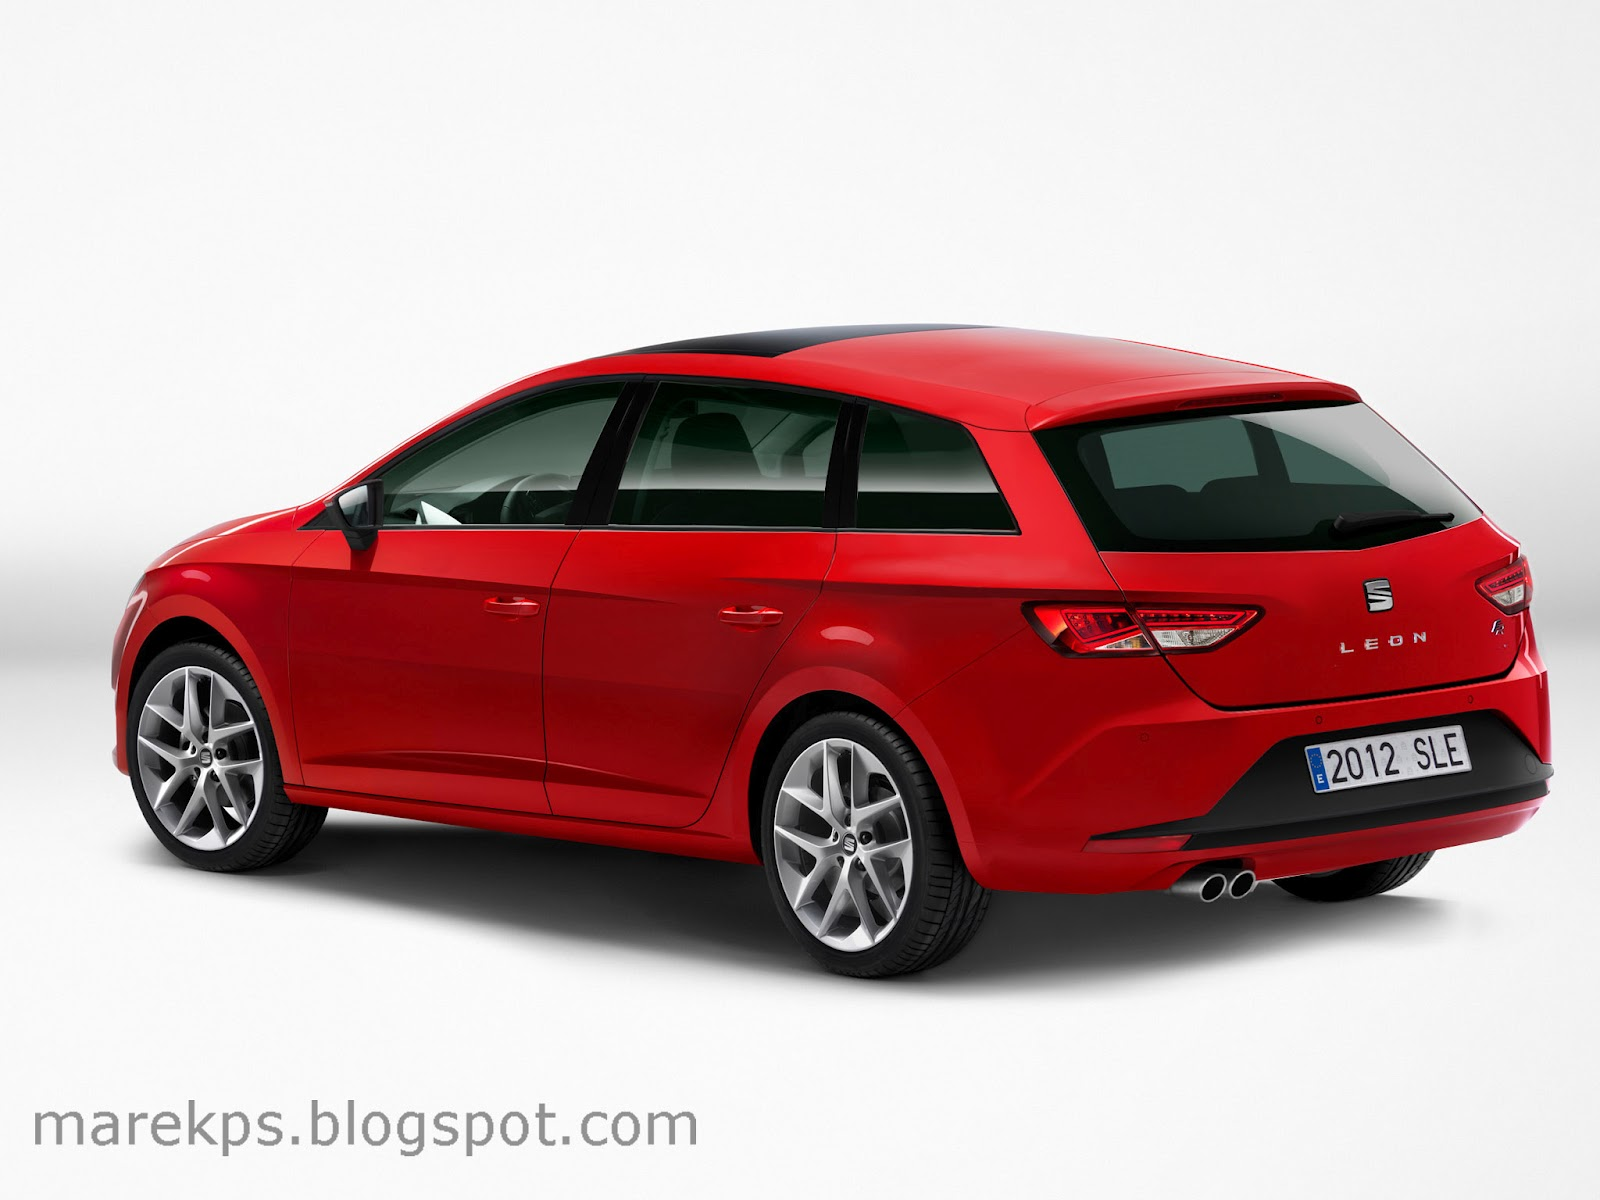 seat leon st technical details history photos on better. Black Bedroom Furniture Sets. Home Design Ideas